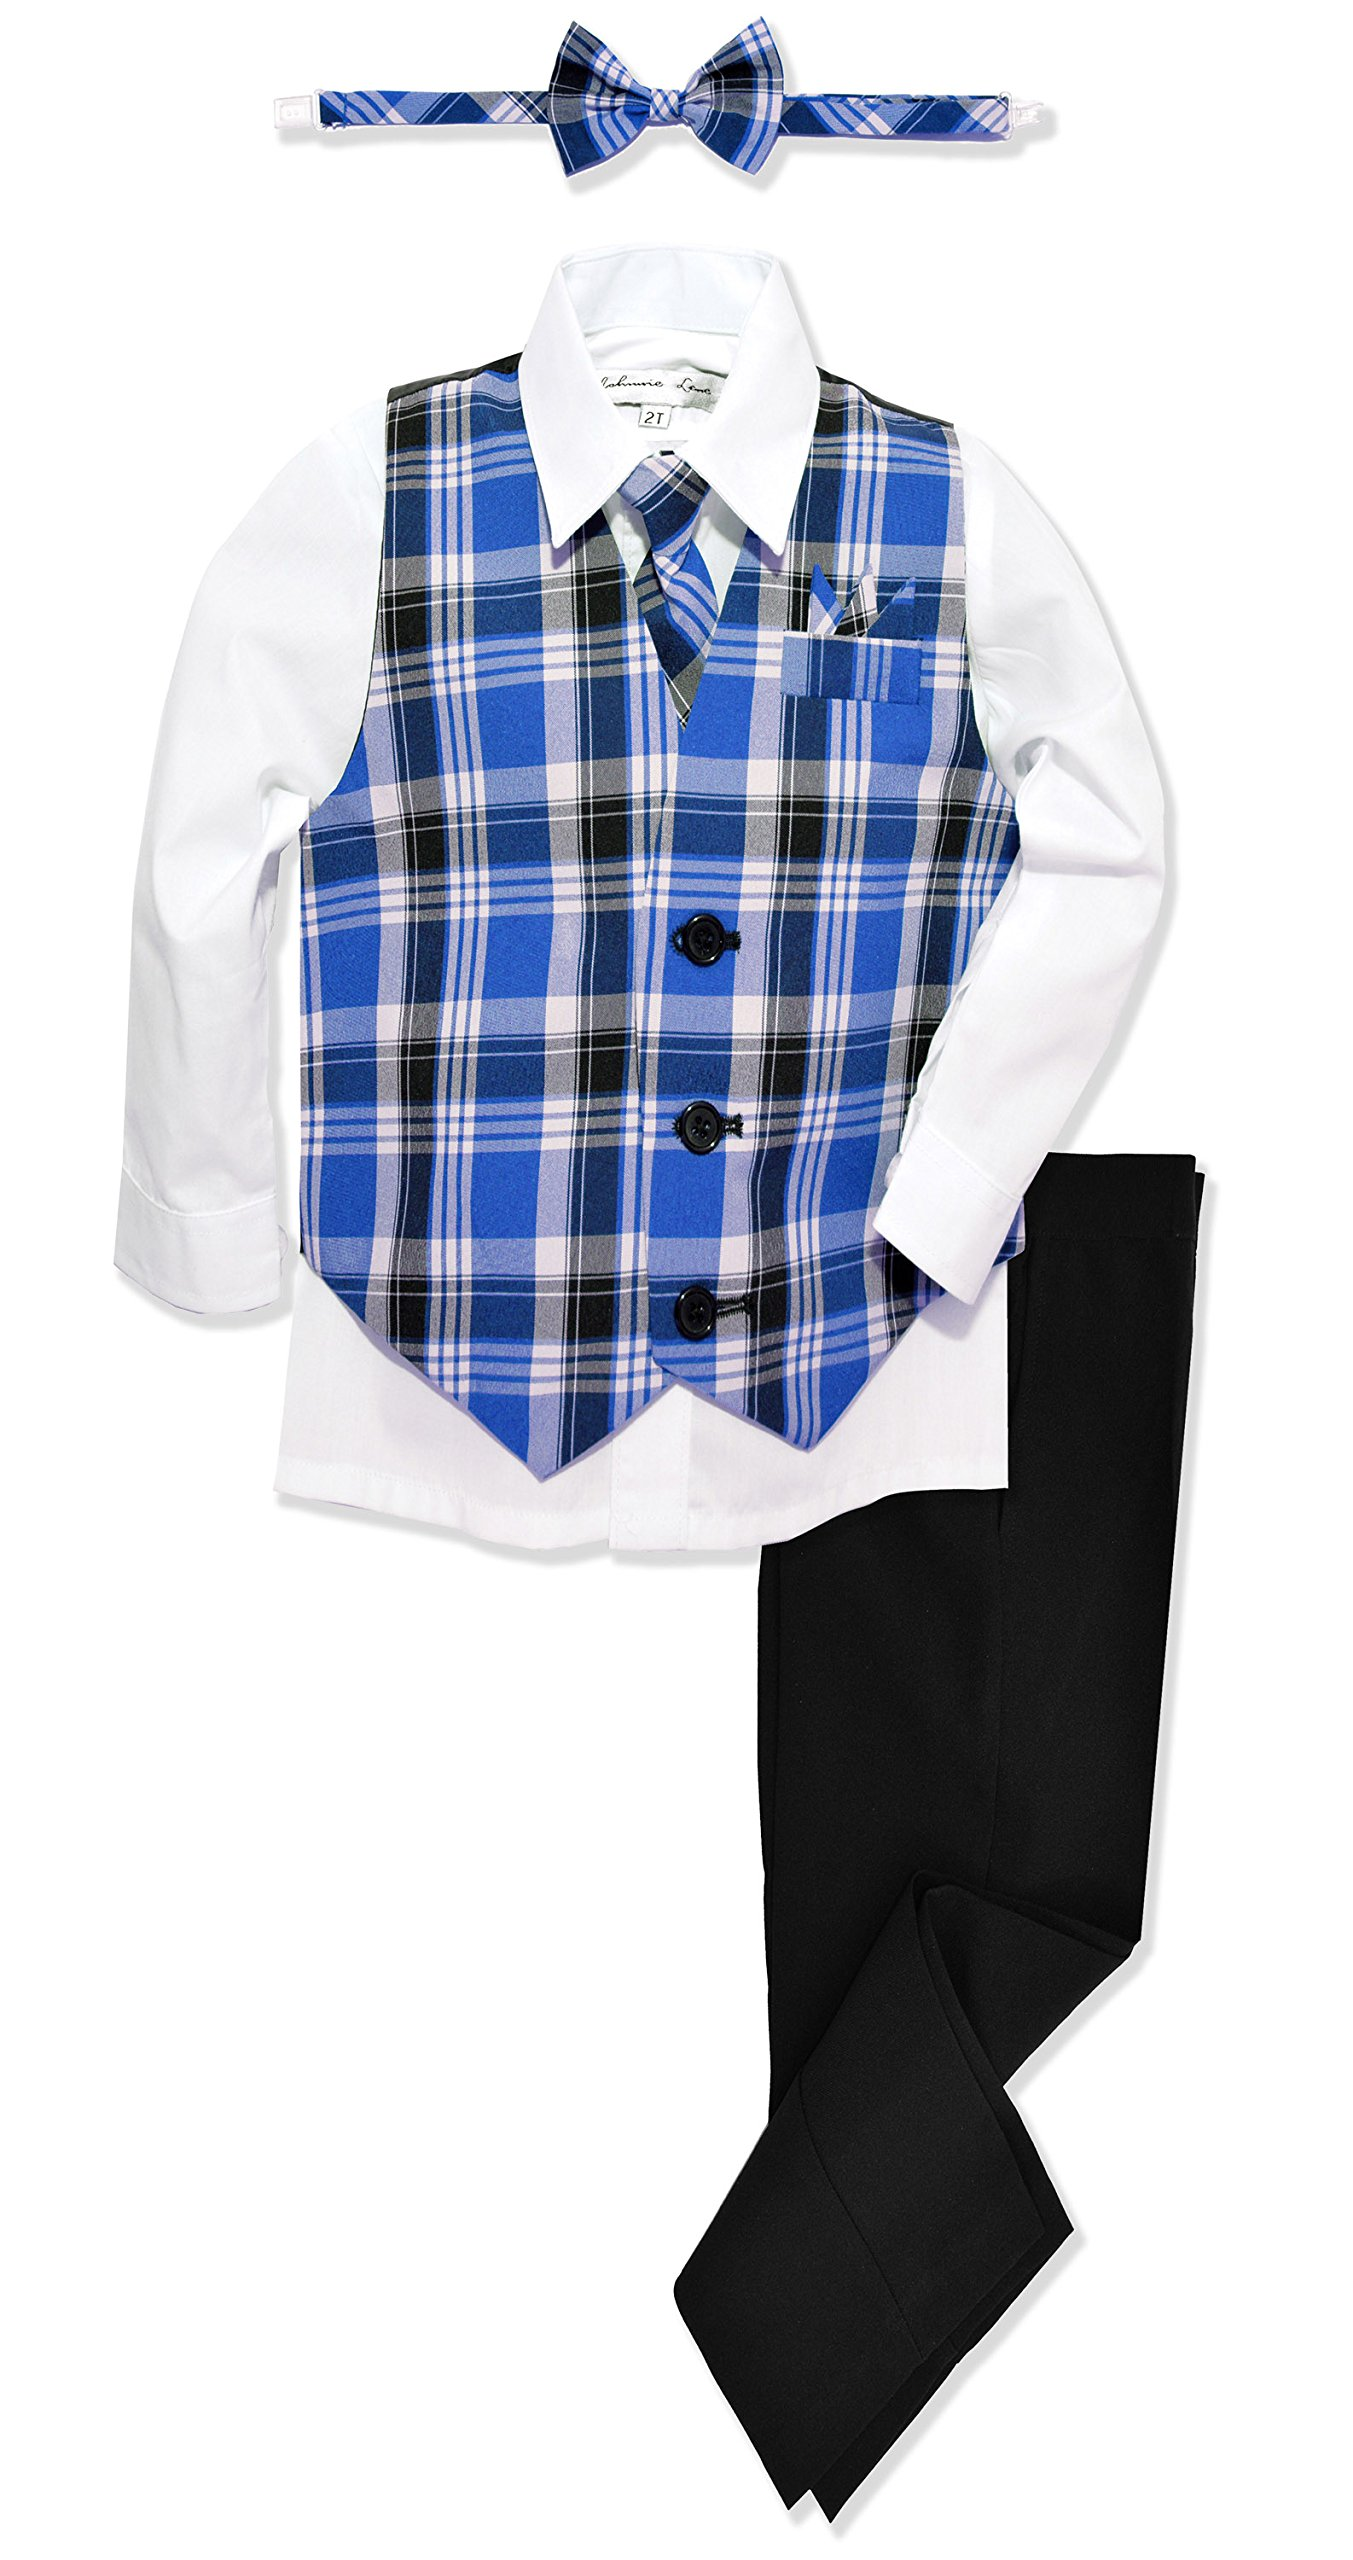 JL46 Boys Formal Plaid Dress Wear Vest Set (4T, Royal)